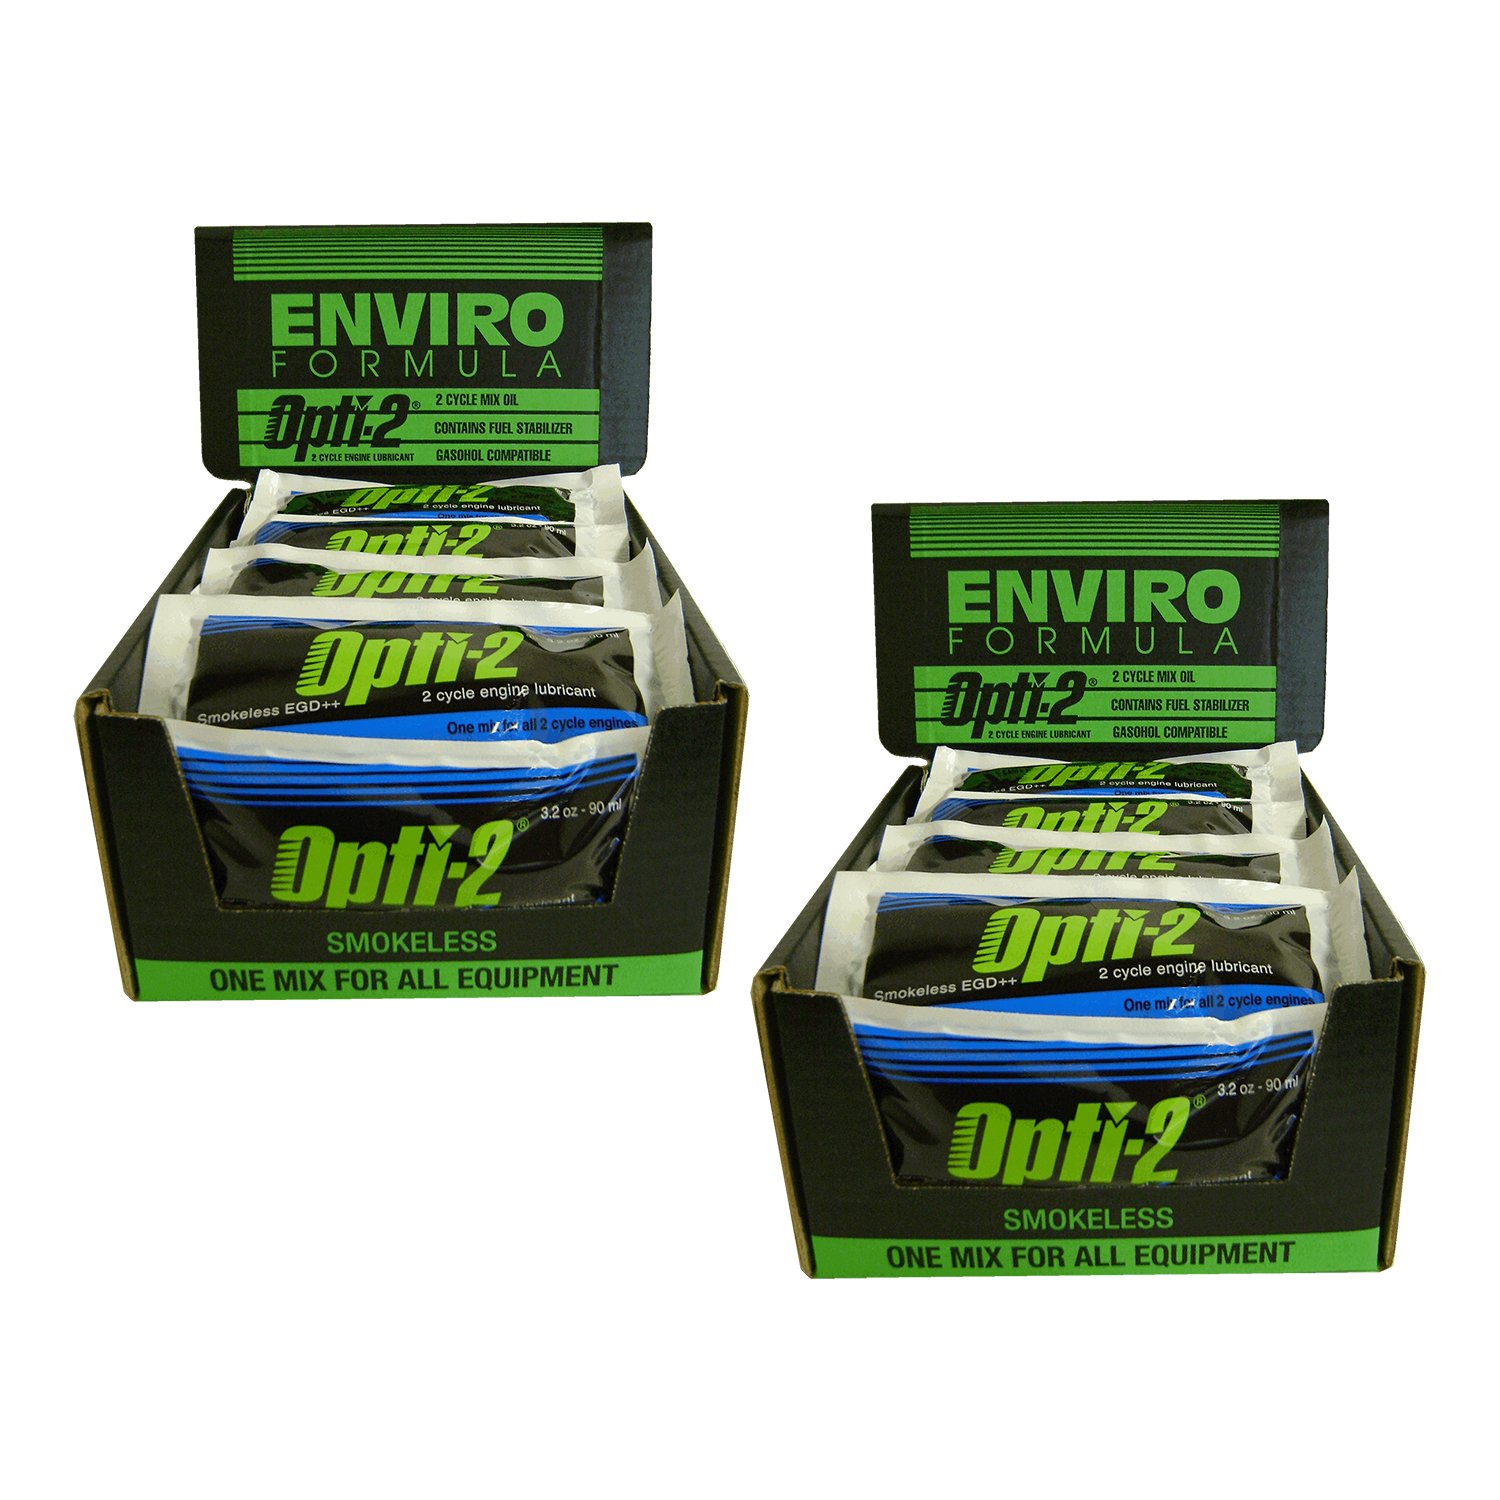 Opti-2 20056 2.5 Gallon Mix Pouches 2-Cycle Engine Lubricant - Case of 56